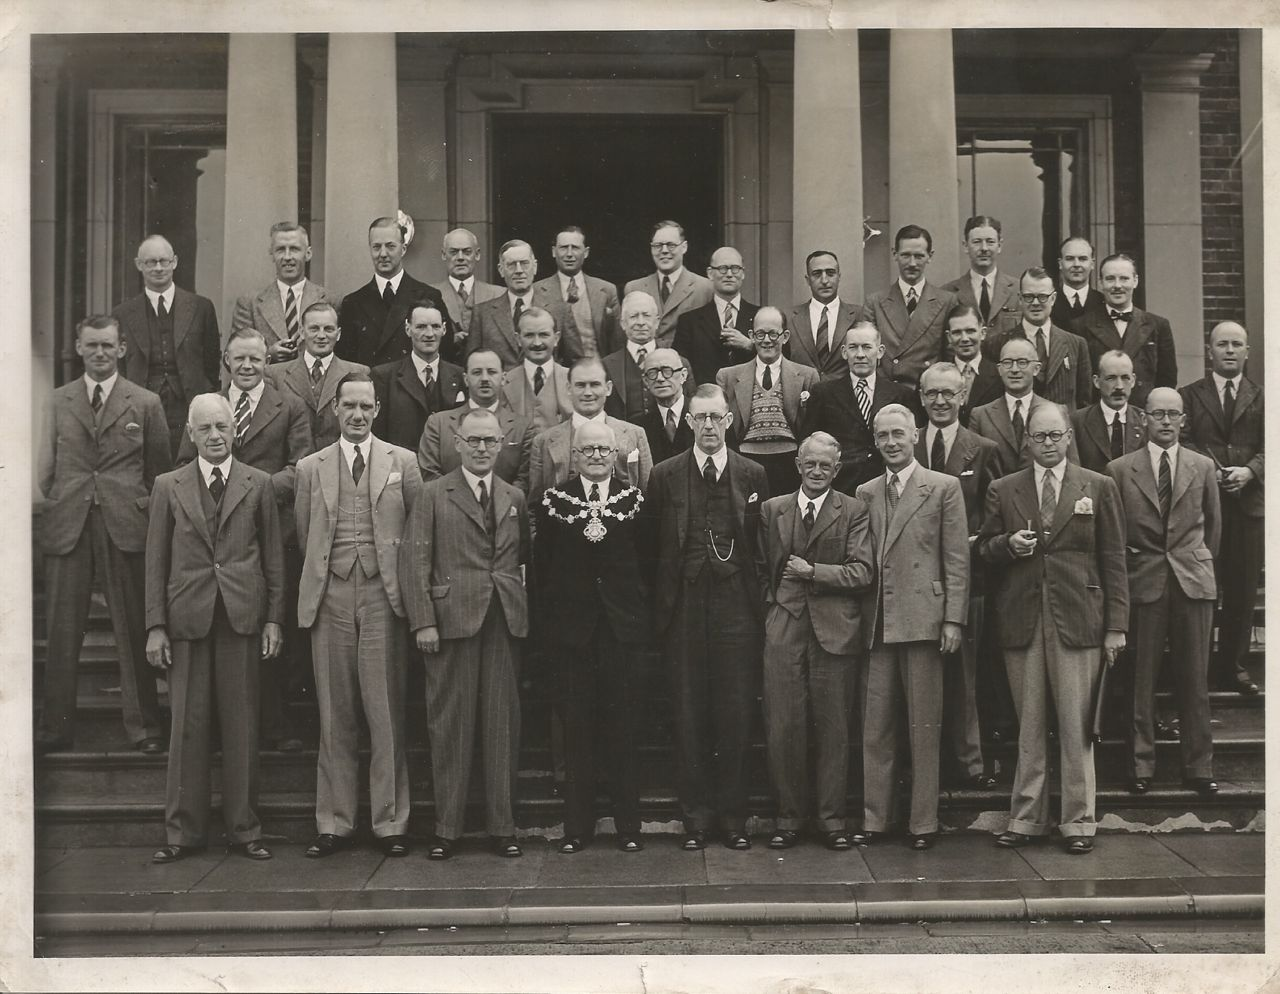 My Great-Grandad Herbert Willacy - the Mayor of Morecambe (obviously the guy wearing the fancy mayor-necklace)...